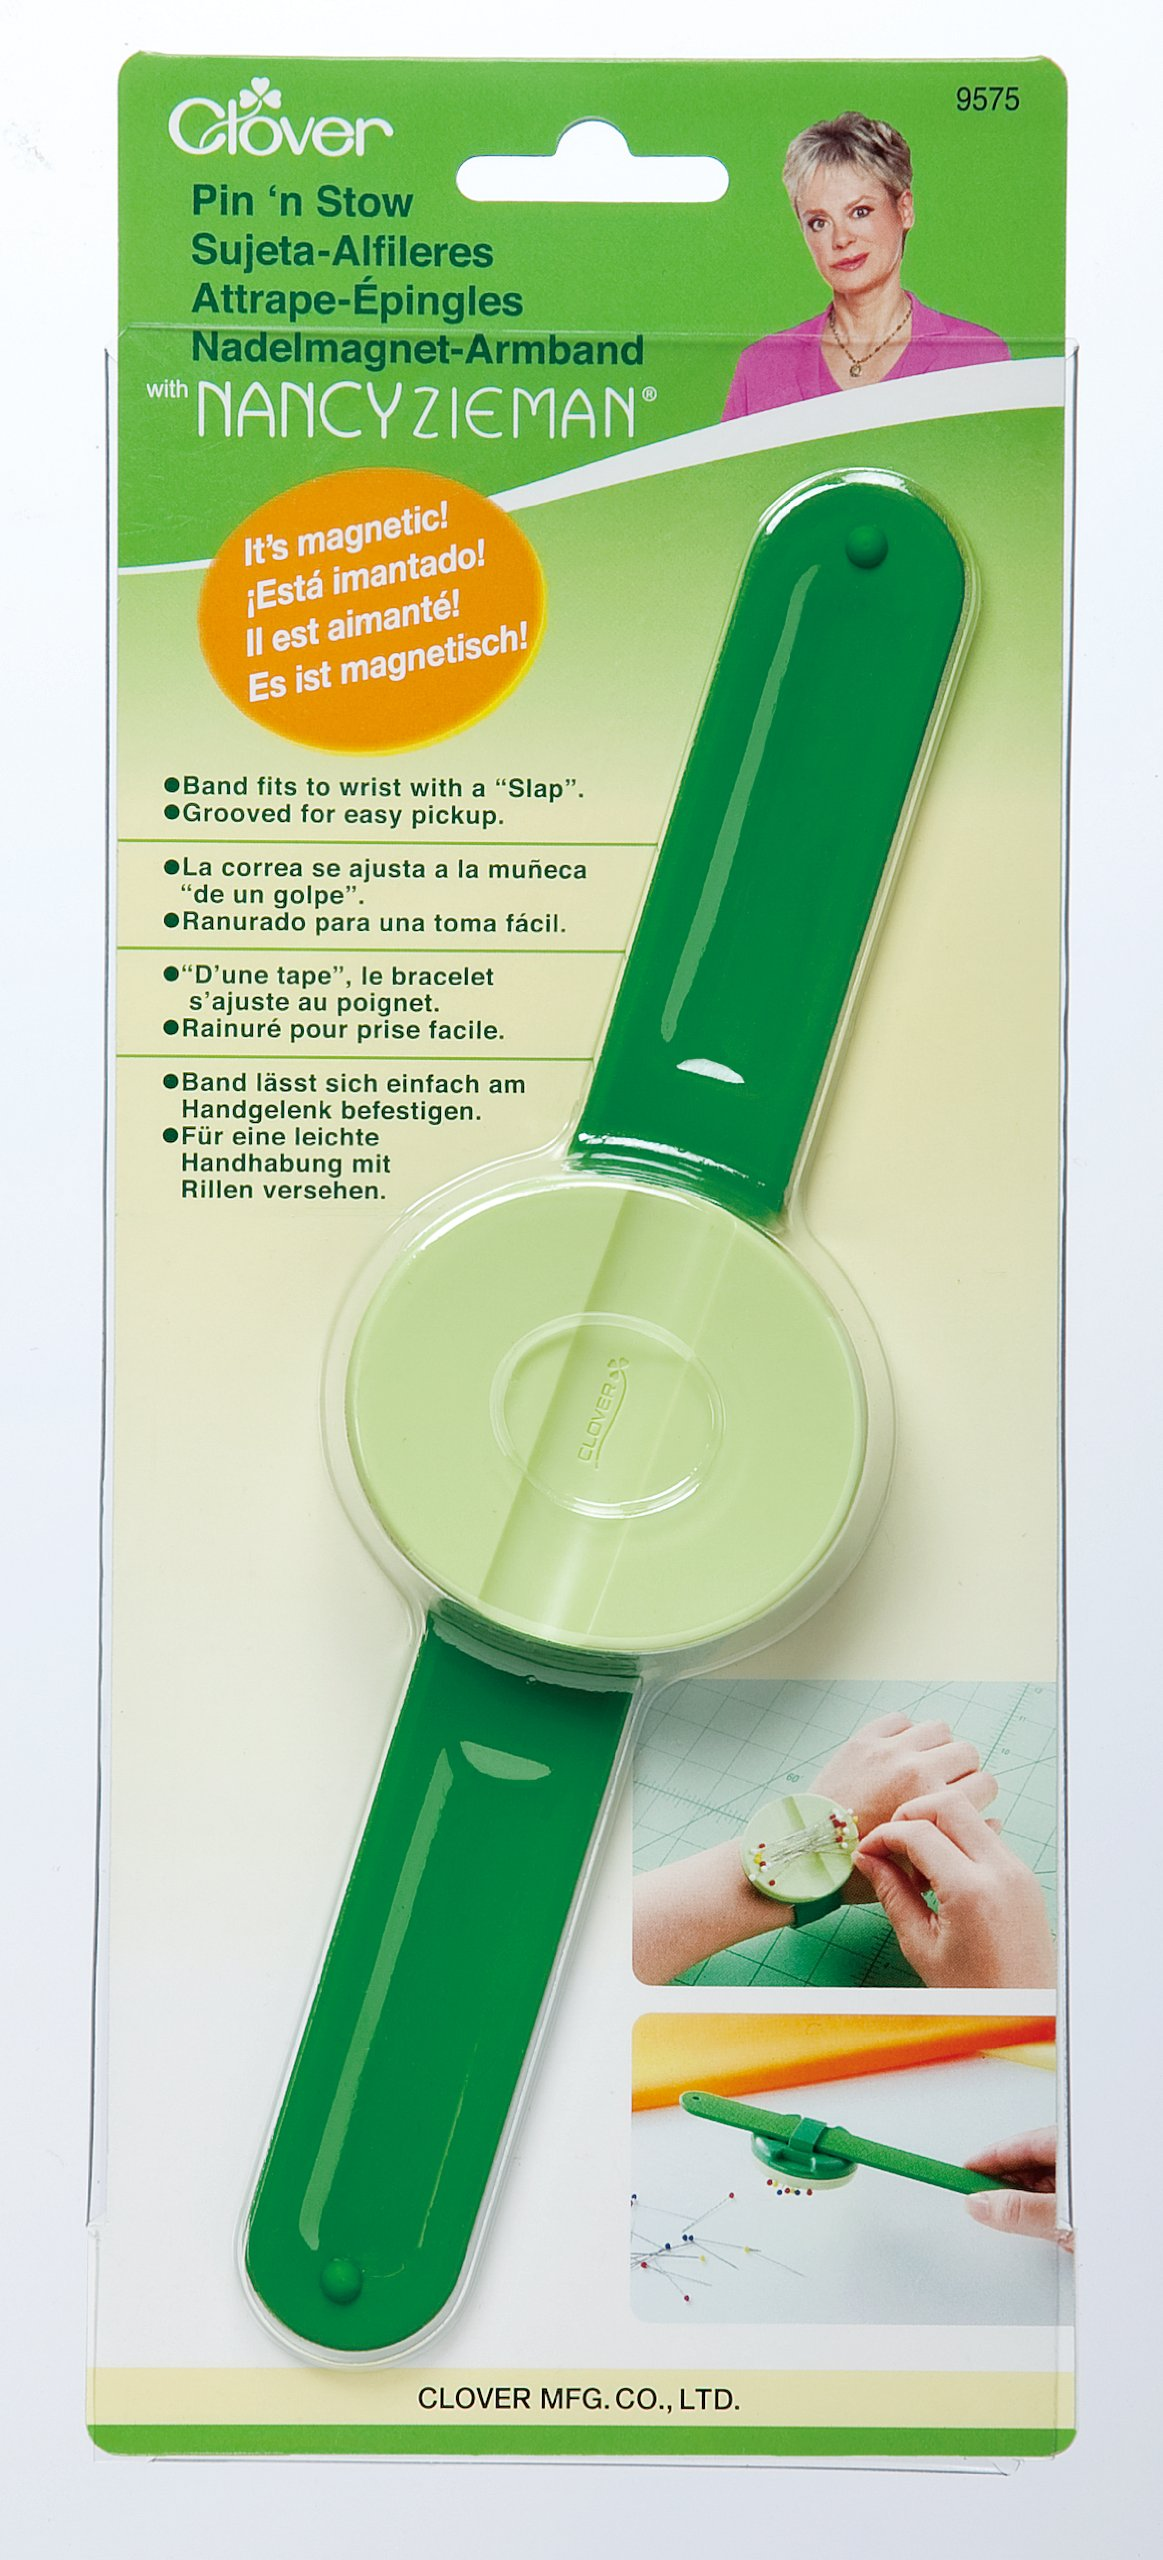 CLOVER 9575 Pin 'n Stow Magnetic Wrist Pin Caddy by CLOVER